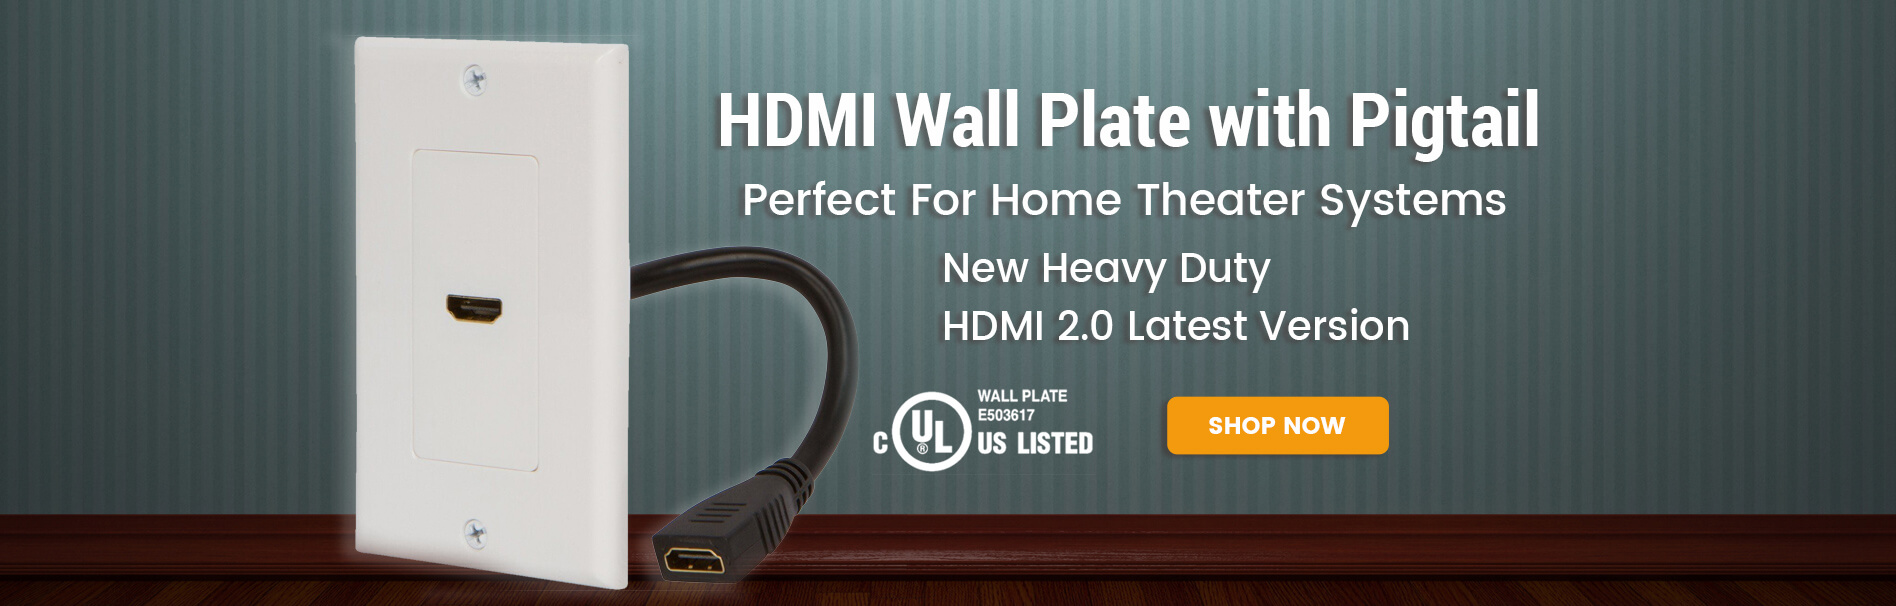 HDMI Wall Plate with Pigtail HDMI 2.0